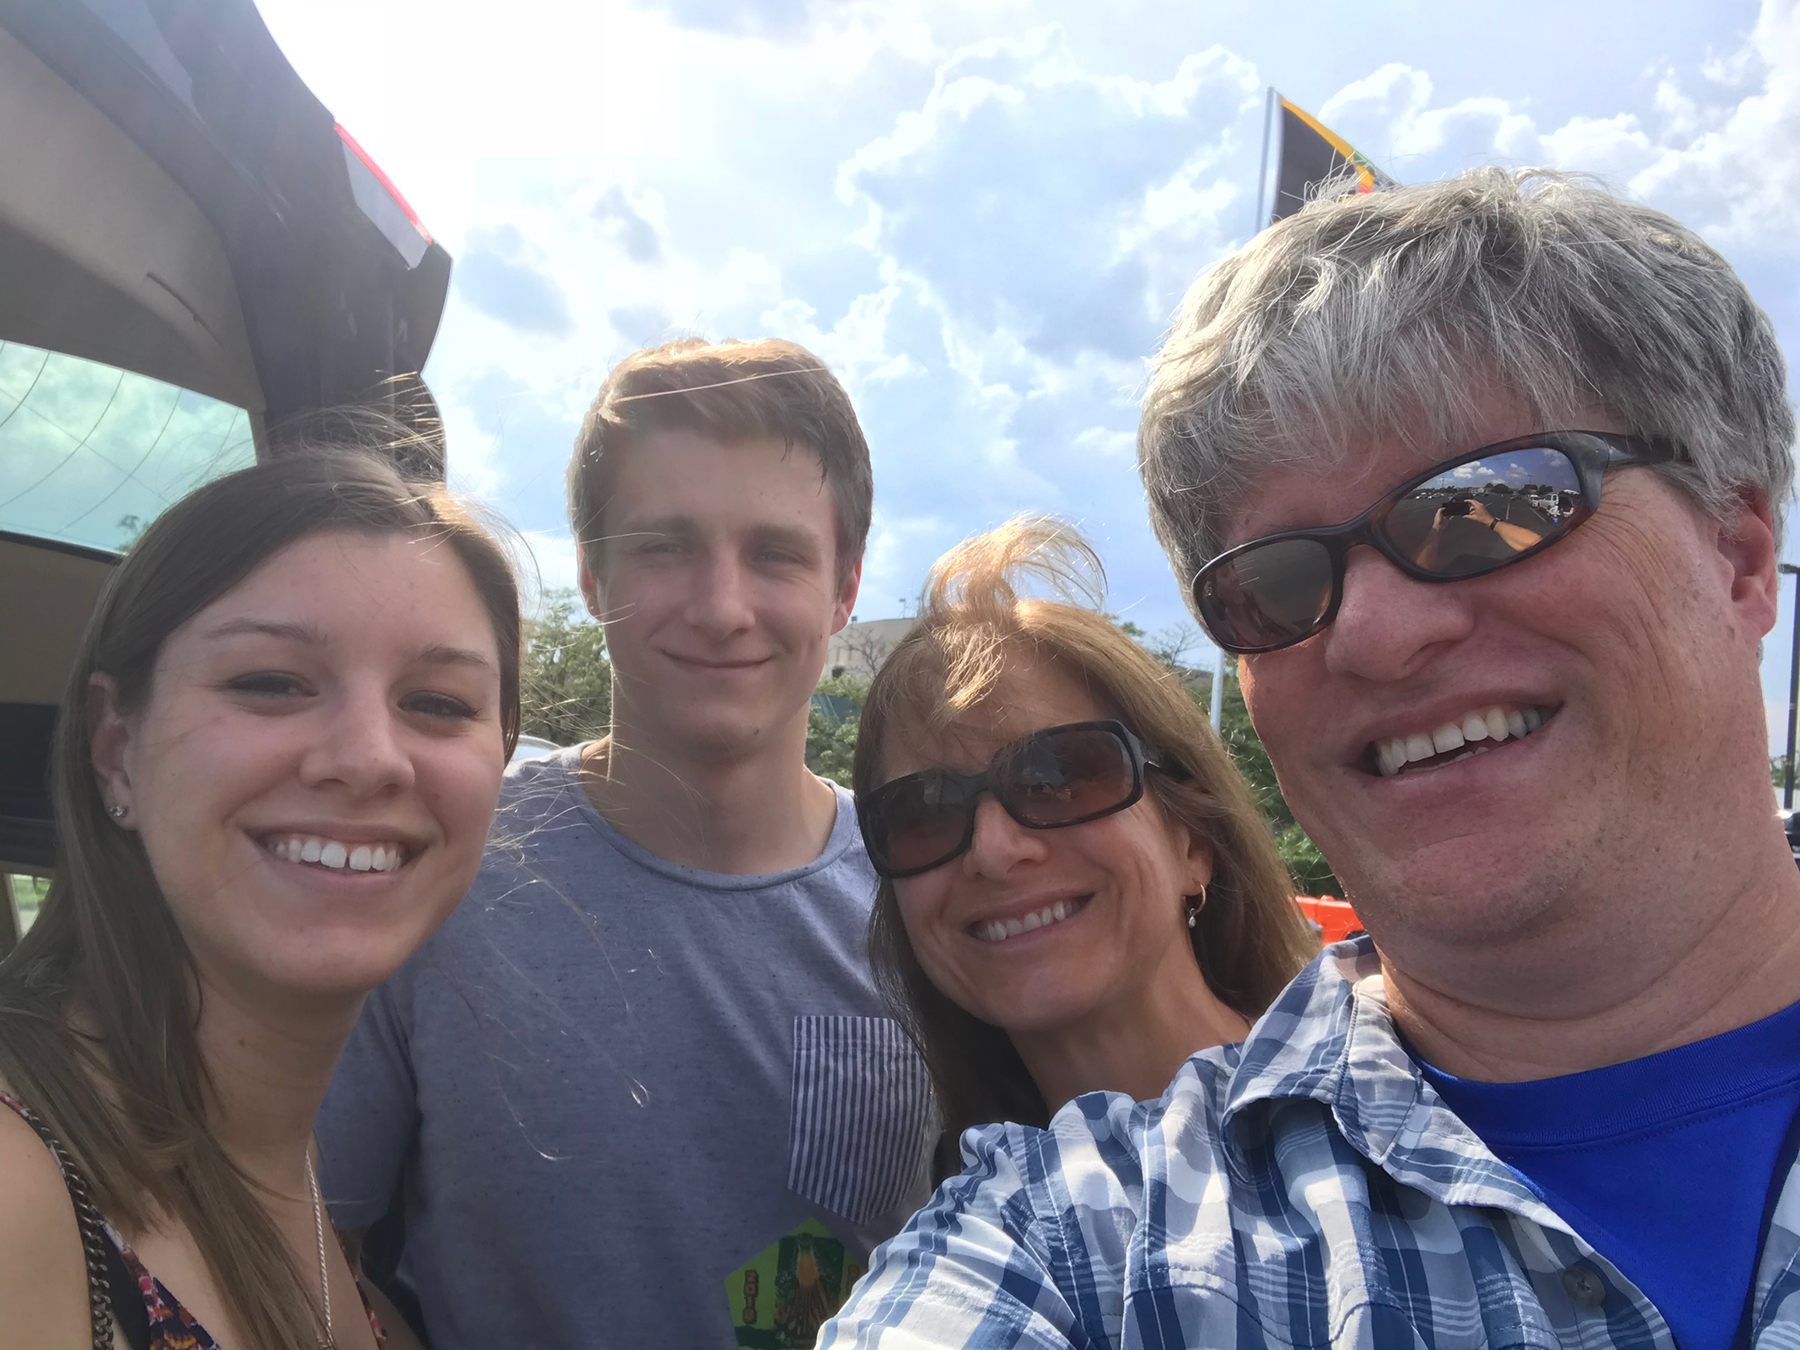 Tom with his family, from left, Anna, Brodie and Lea-Lea, in the parking lot before a 2018 Phish show in Camden, NJ.